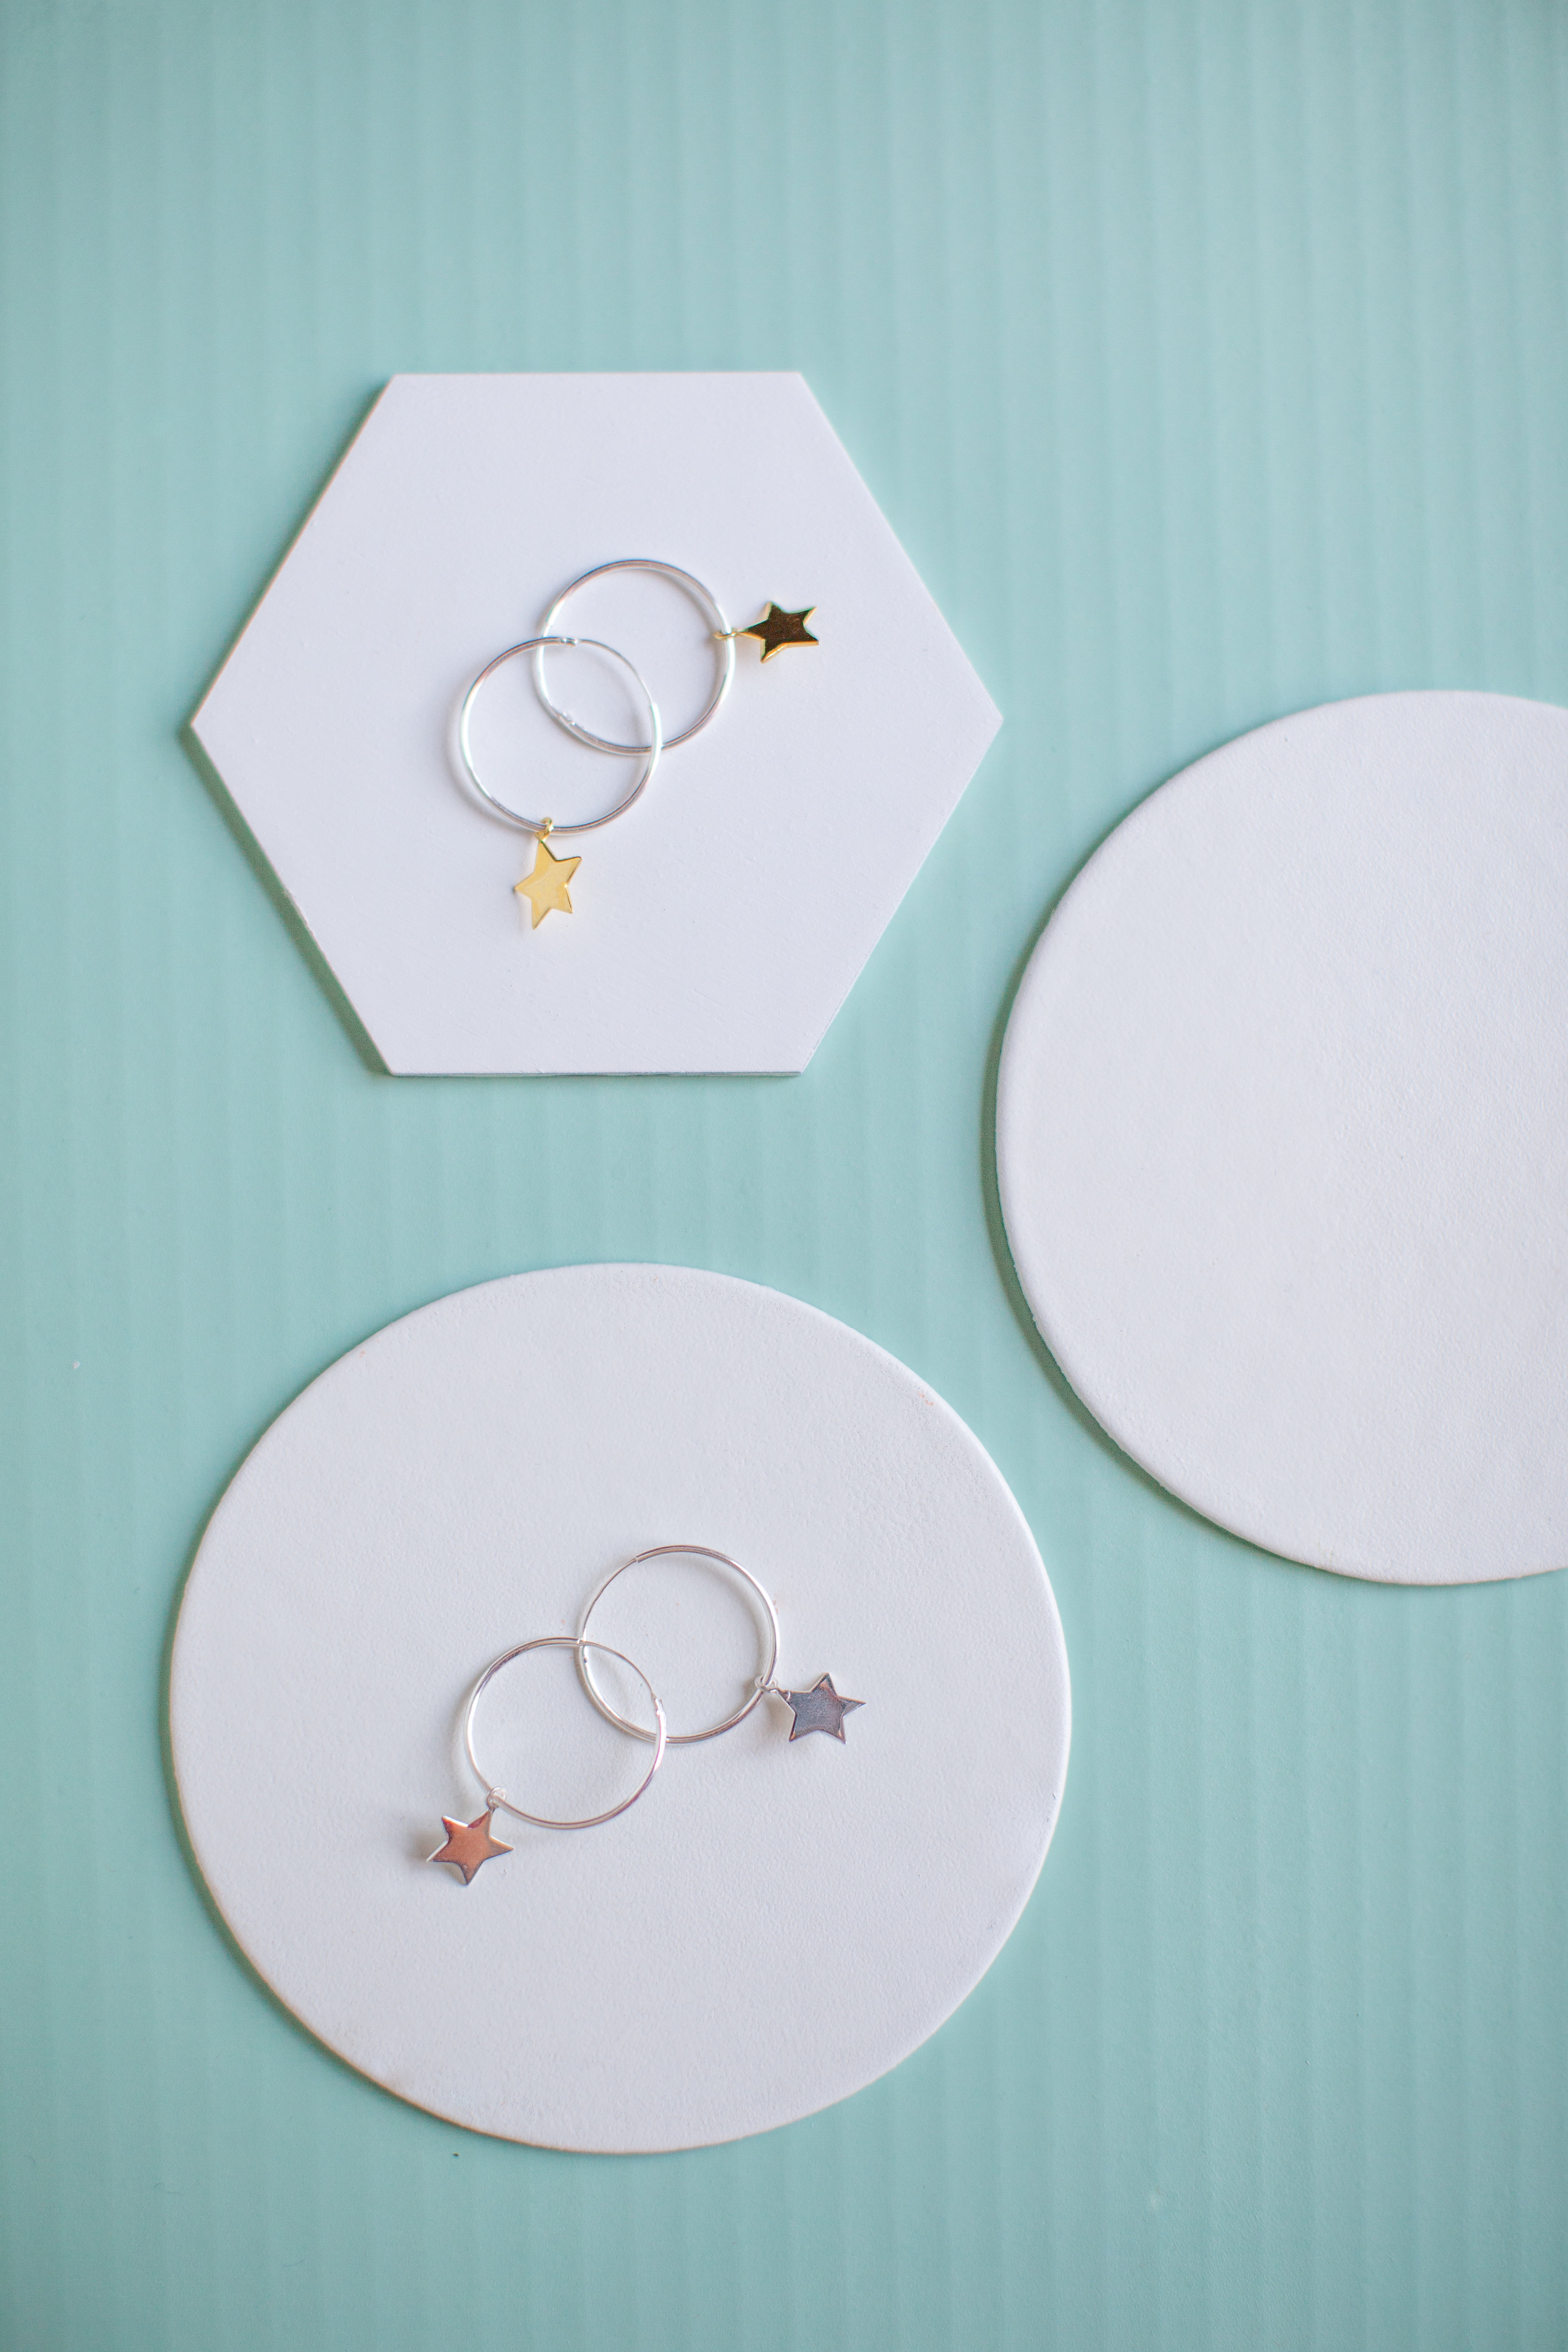 Sterling silver hoops found in a £50 Monthly Gift Box Subscription